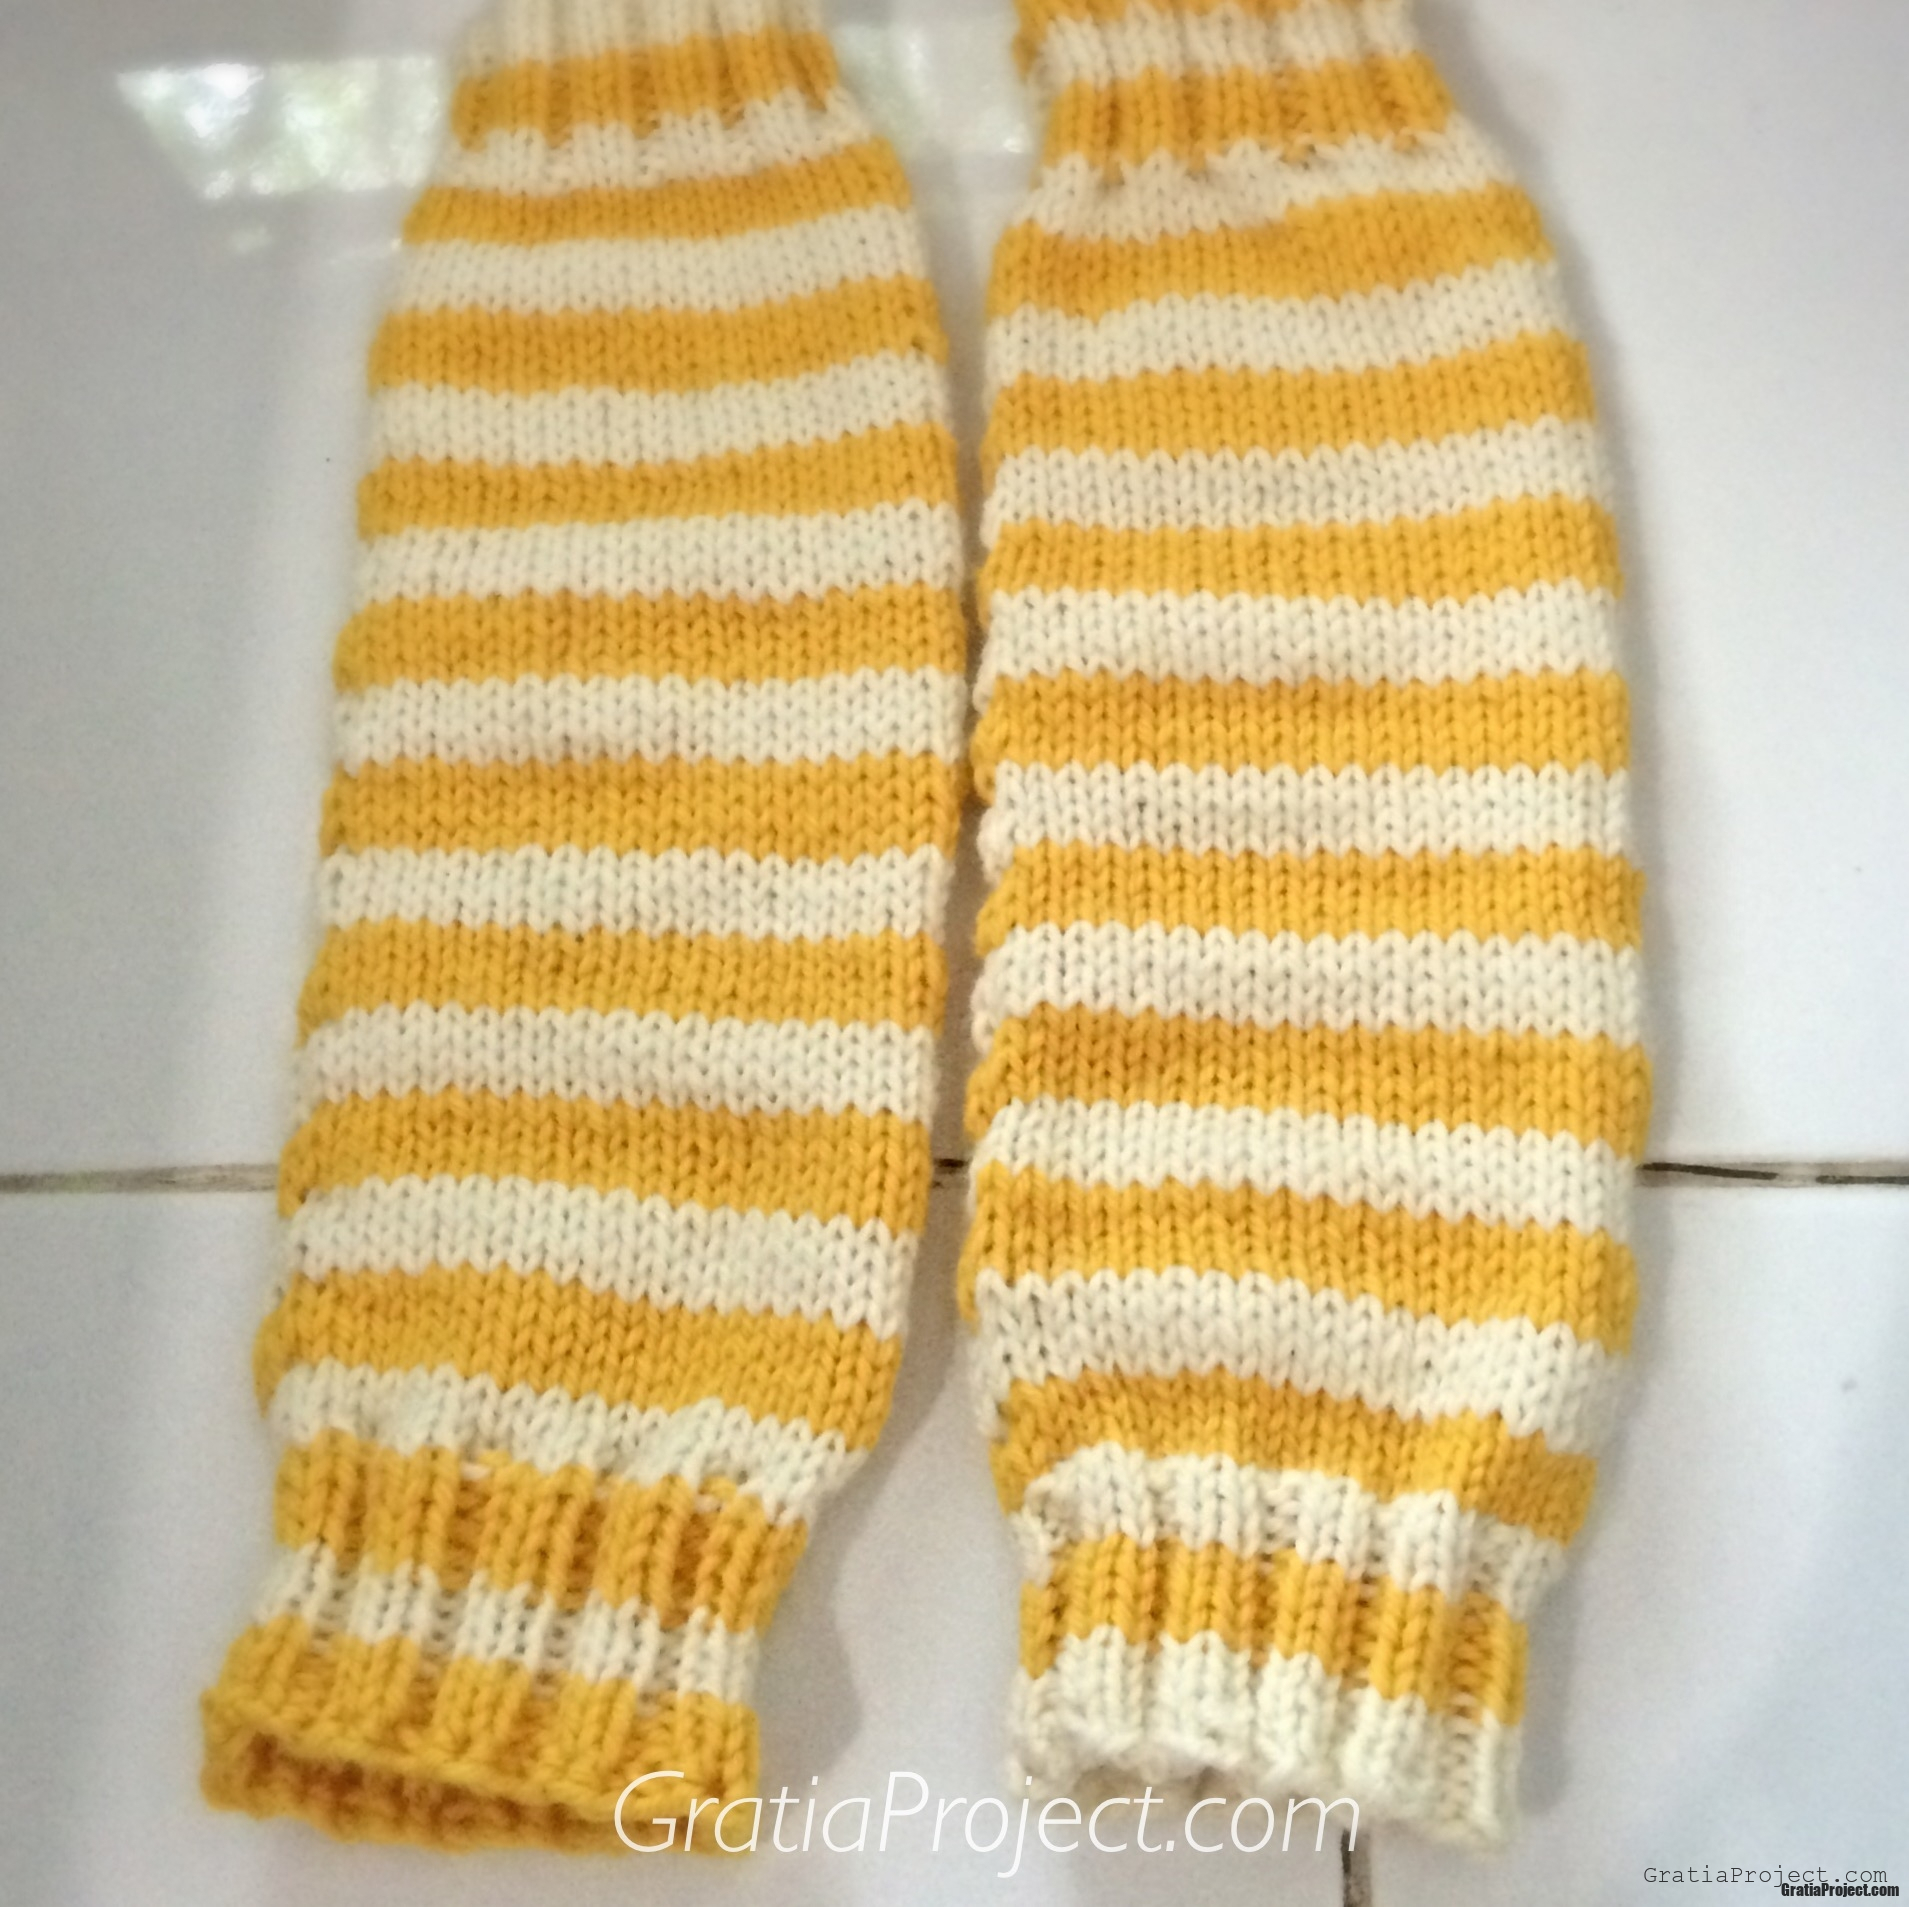 Striped Leg Warmers Knitting Pattern   Gratia Project